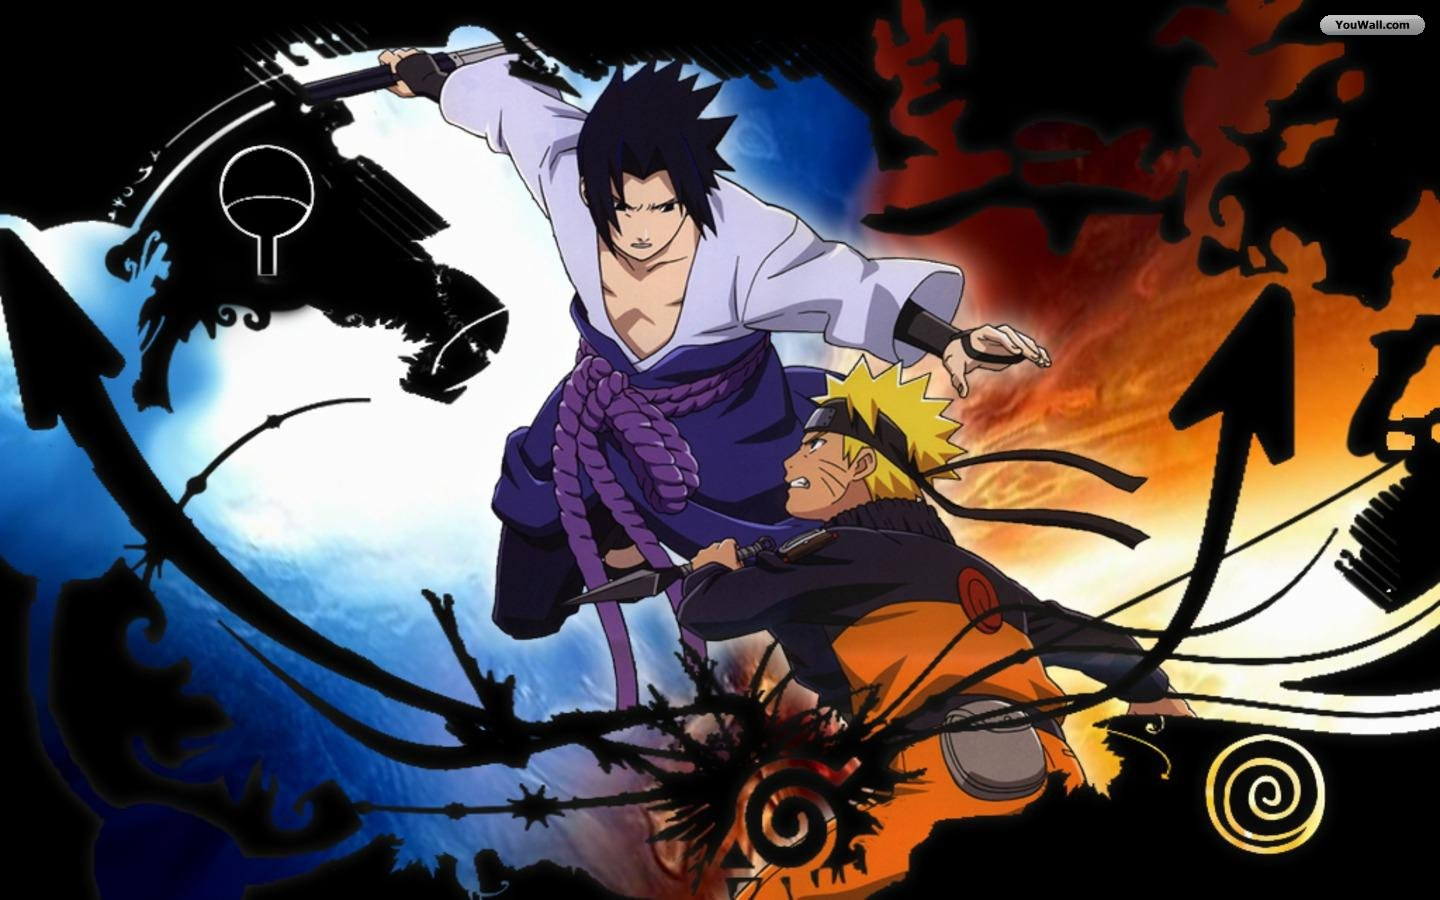 Sasuke vs Naruto - Kiba16 Wallpaper (30407168) - Fanpop fanclubs